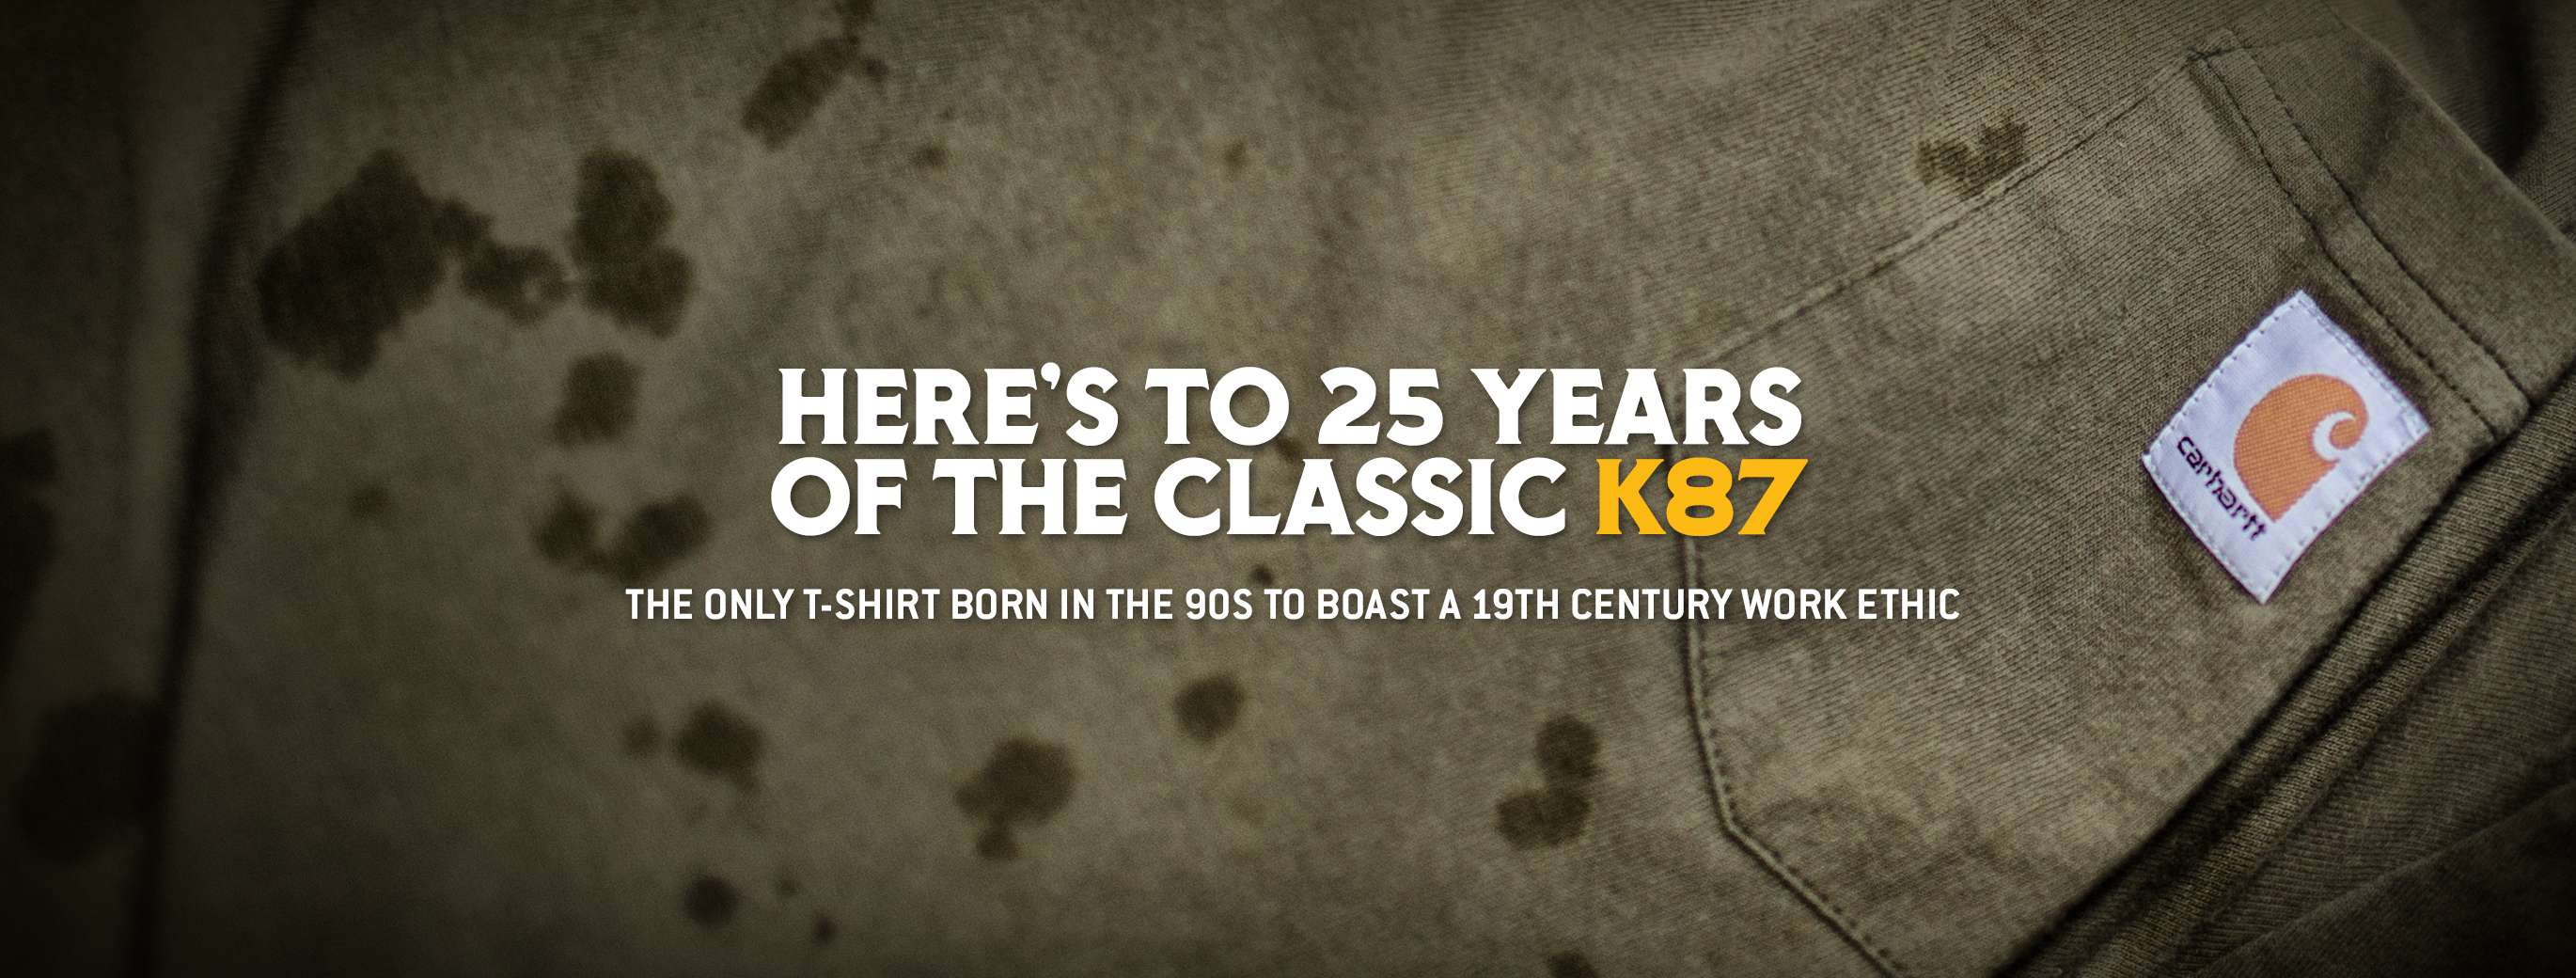 Here's To 25 Years of the Classic K87